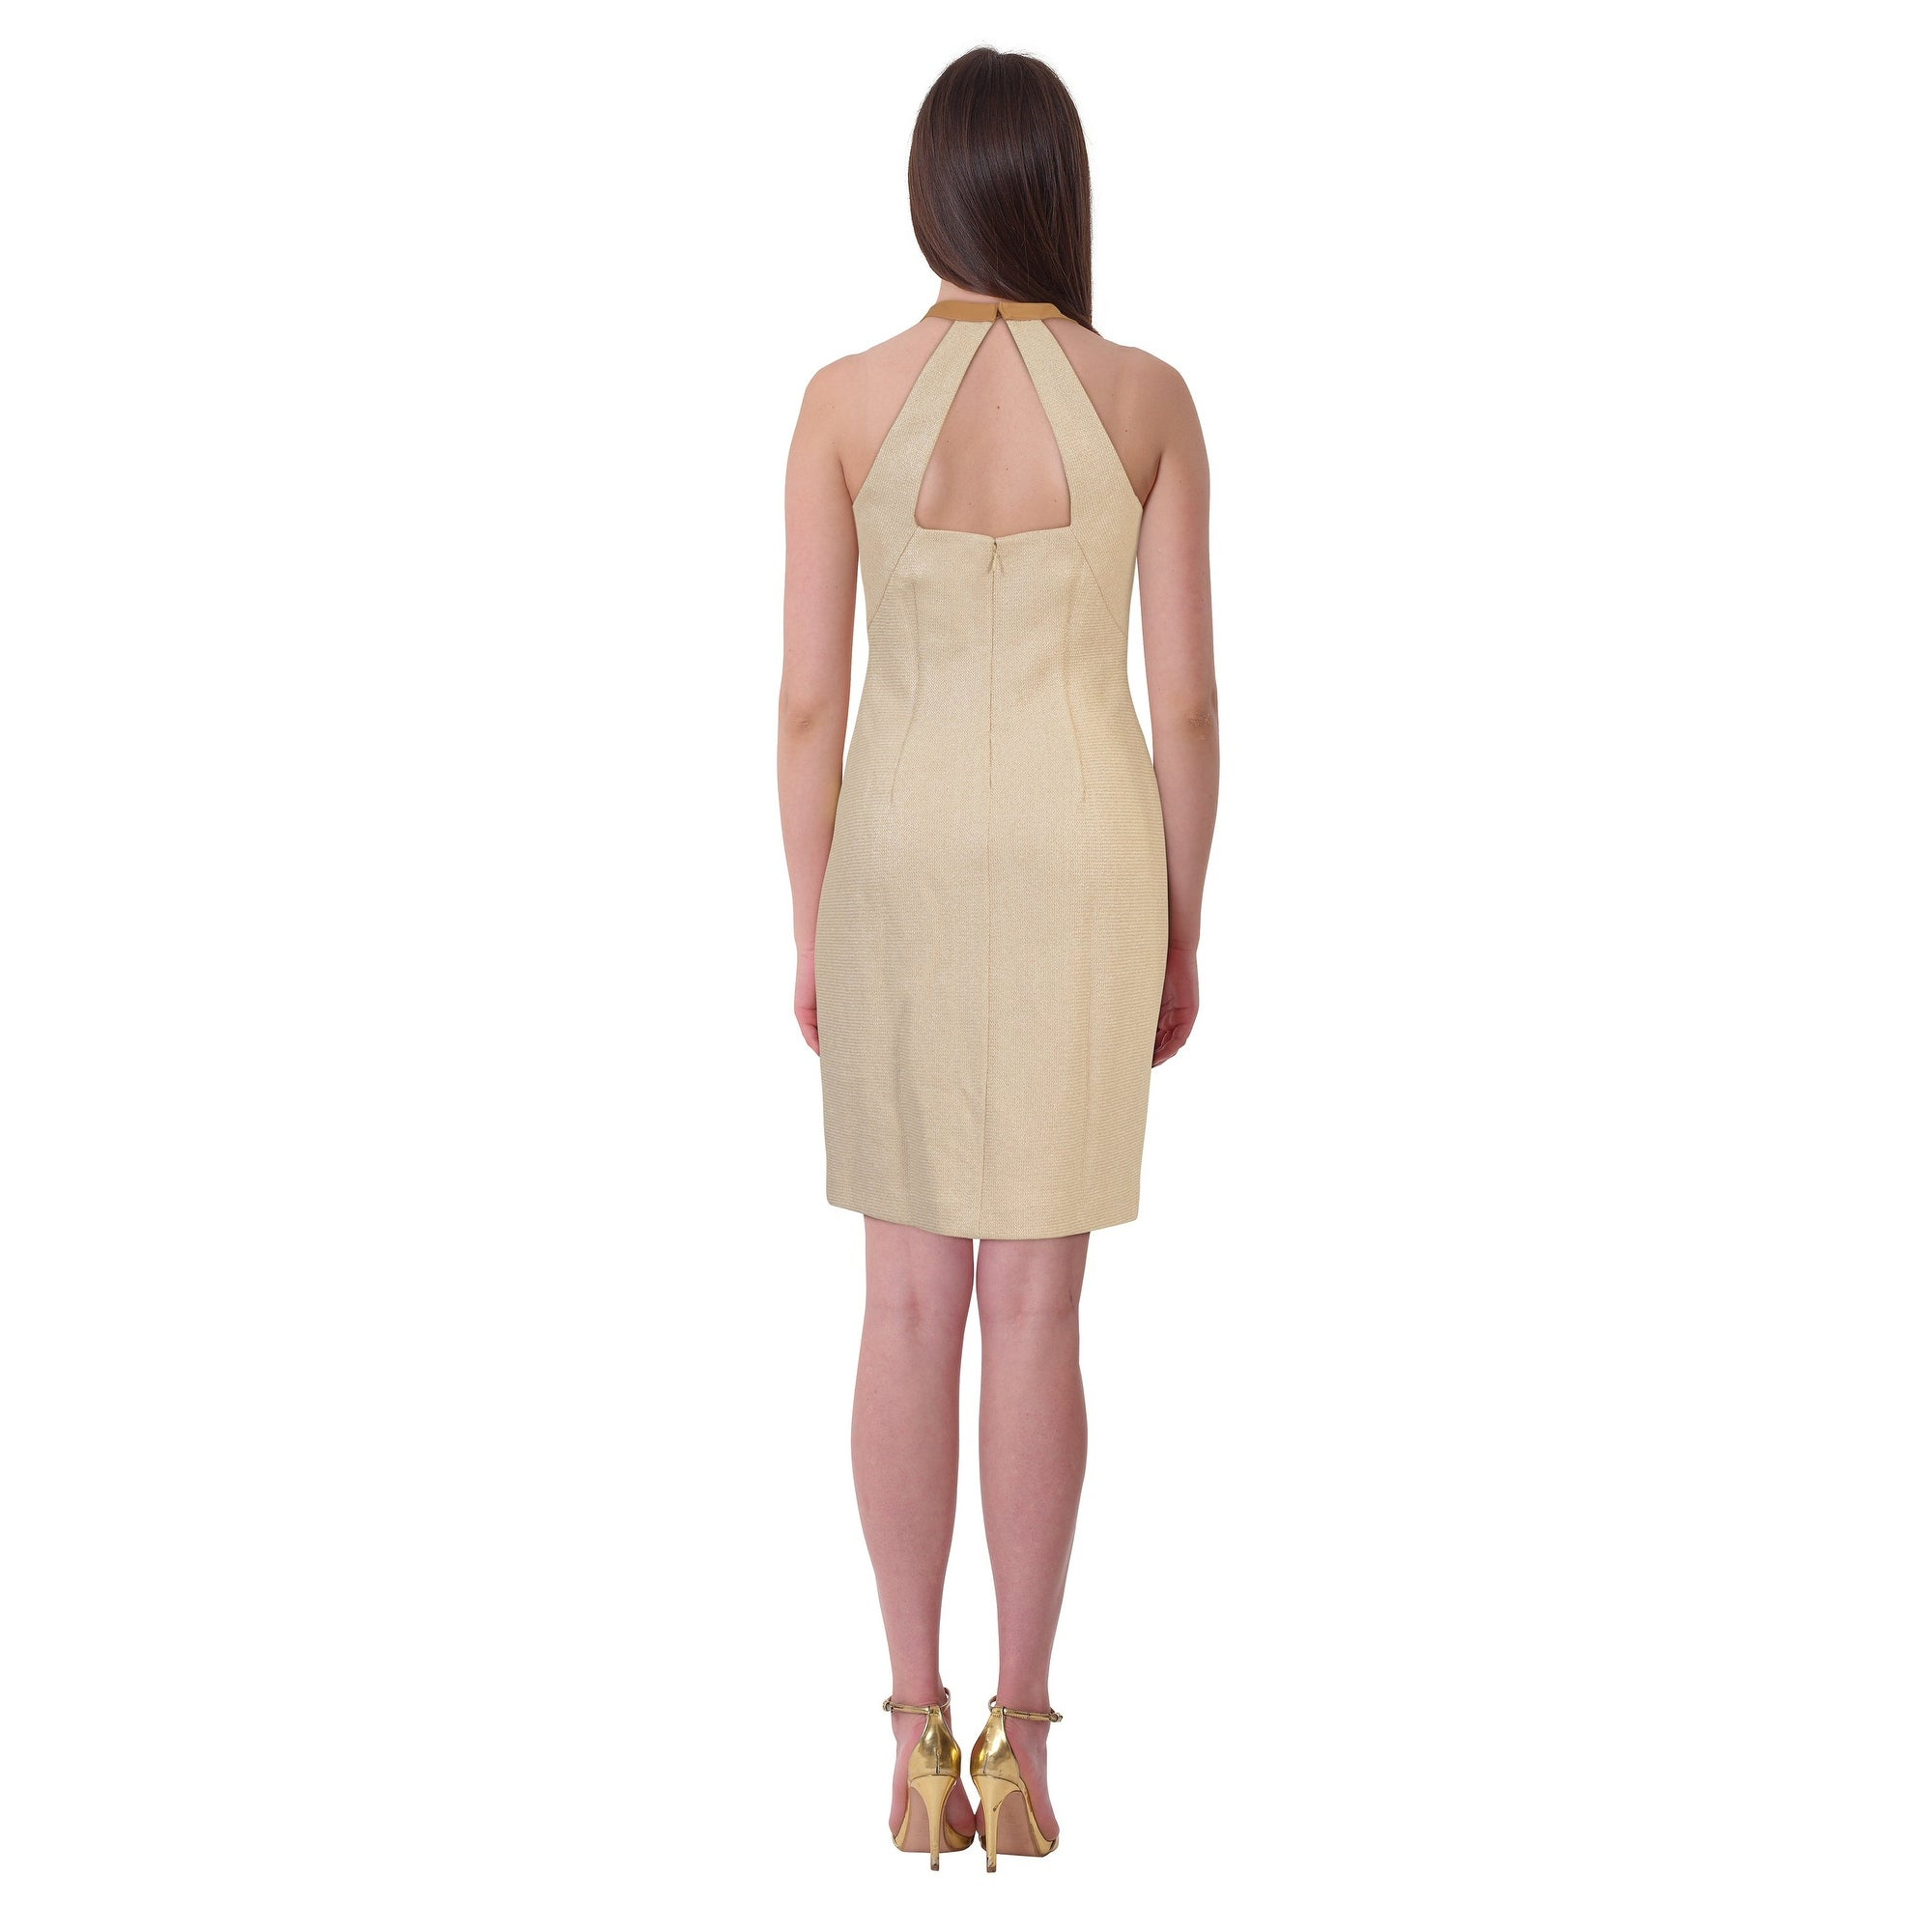 355109a47cc6 Shop Lauren Ralph Lauren Leather Trim Cutout Back Halter Cocktail Day Dress  Beige - Free Shipping Today - Overstock.com - 19218426